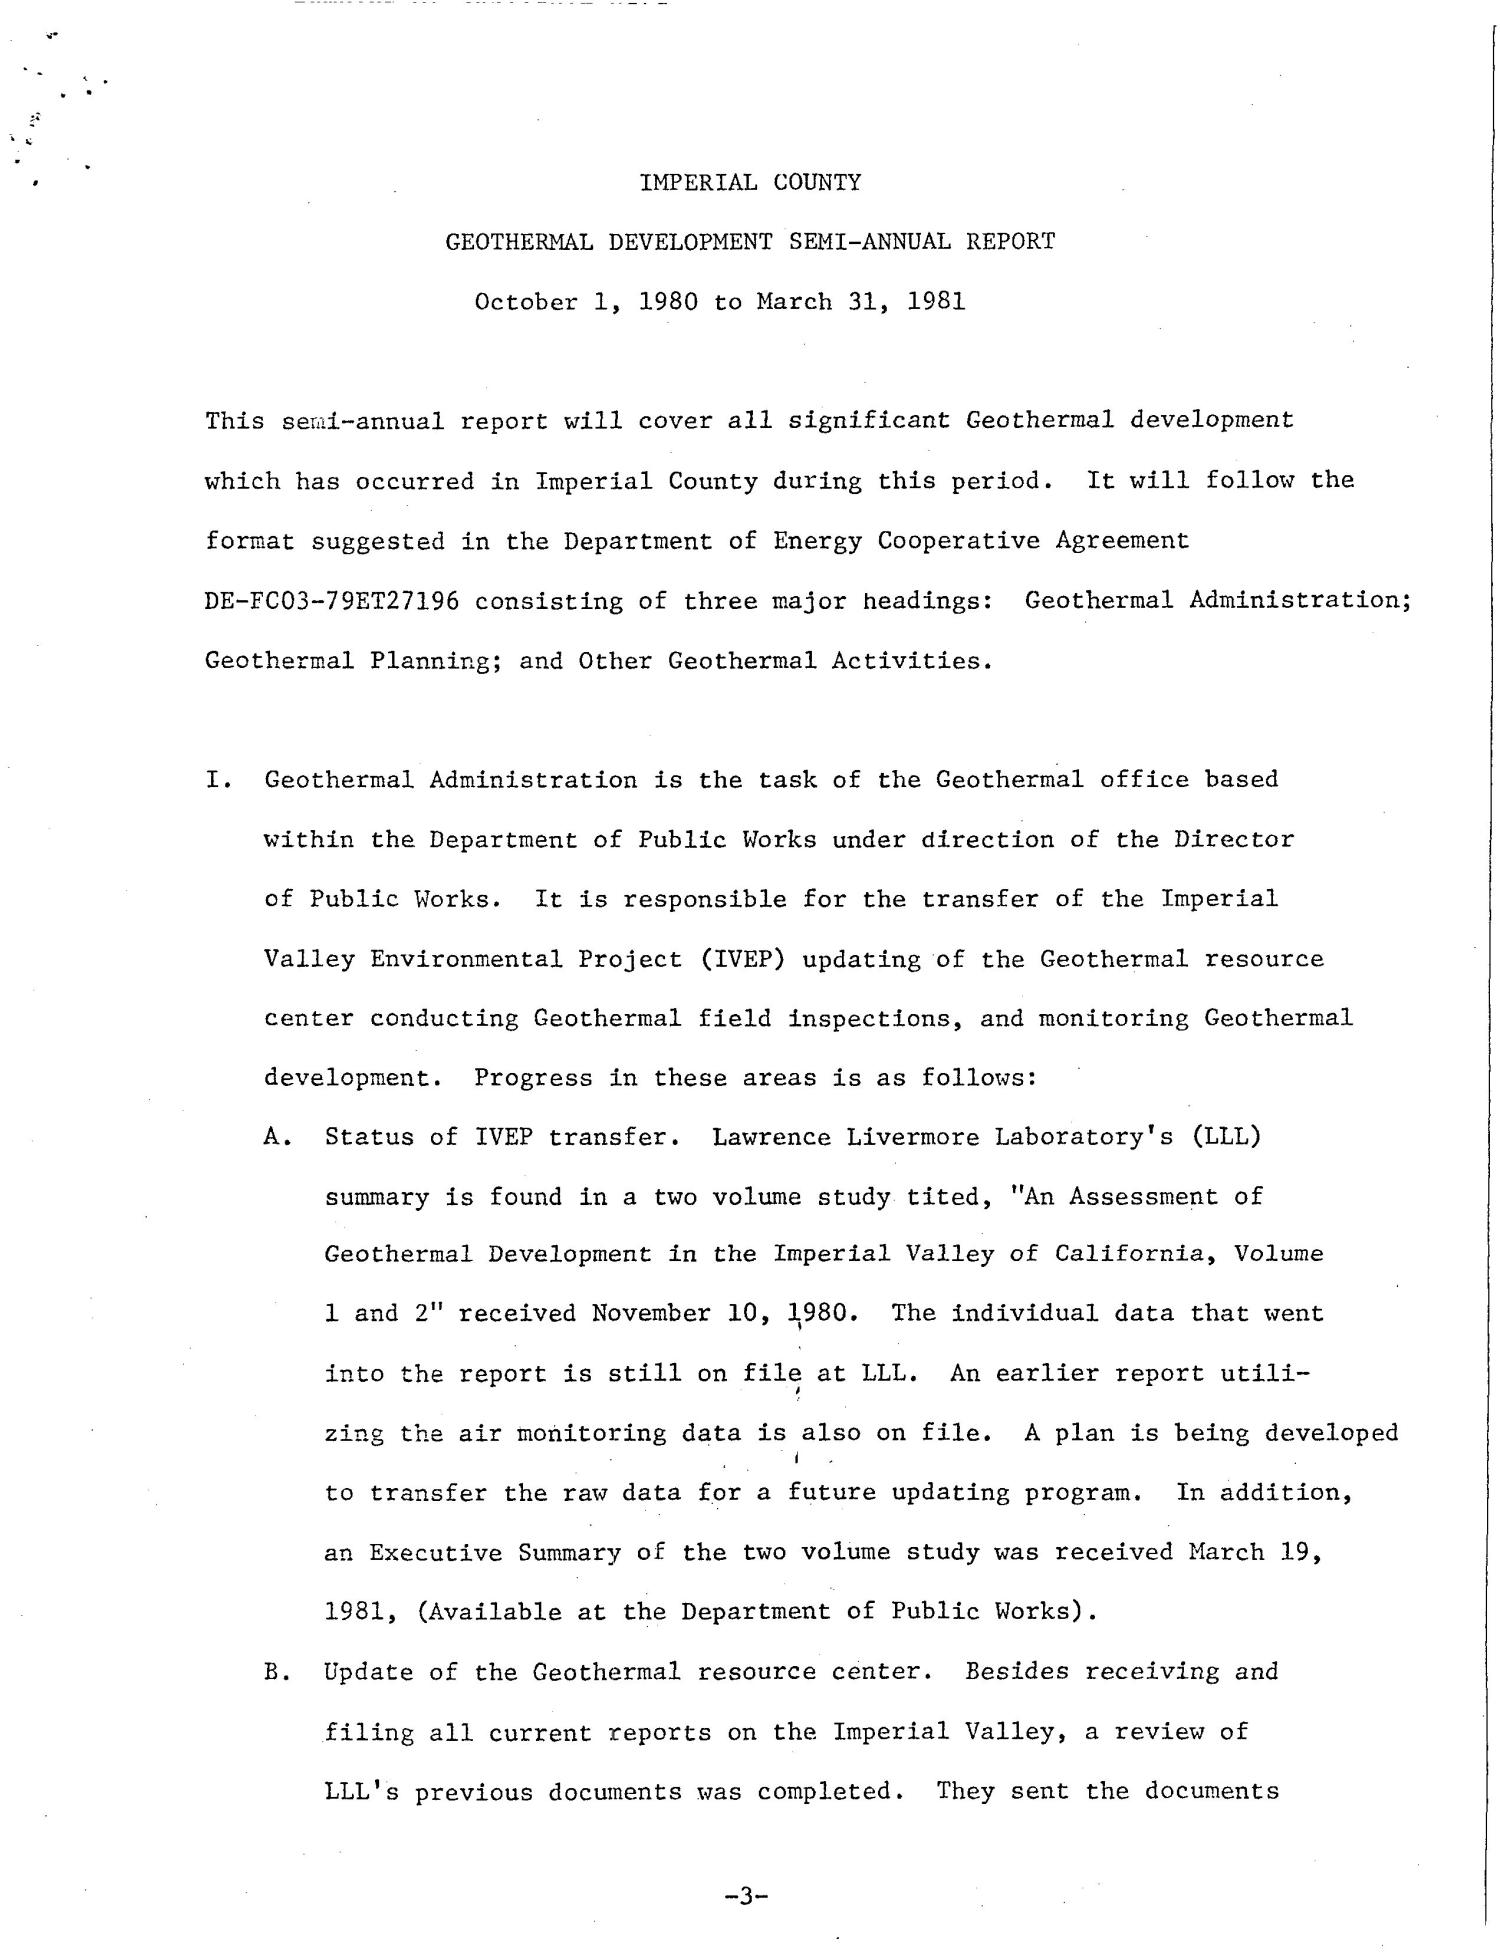 Geothermal development. Semi-annual report, October 1, 1980-March 31, 1981                                                                                                      [Sequence #]: 7 of 45